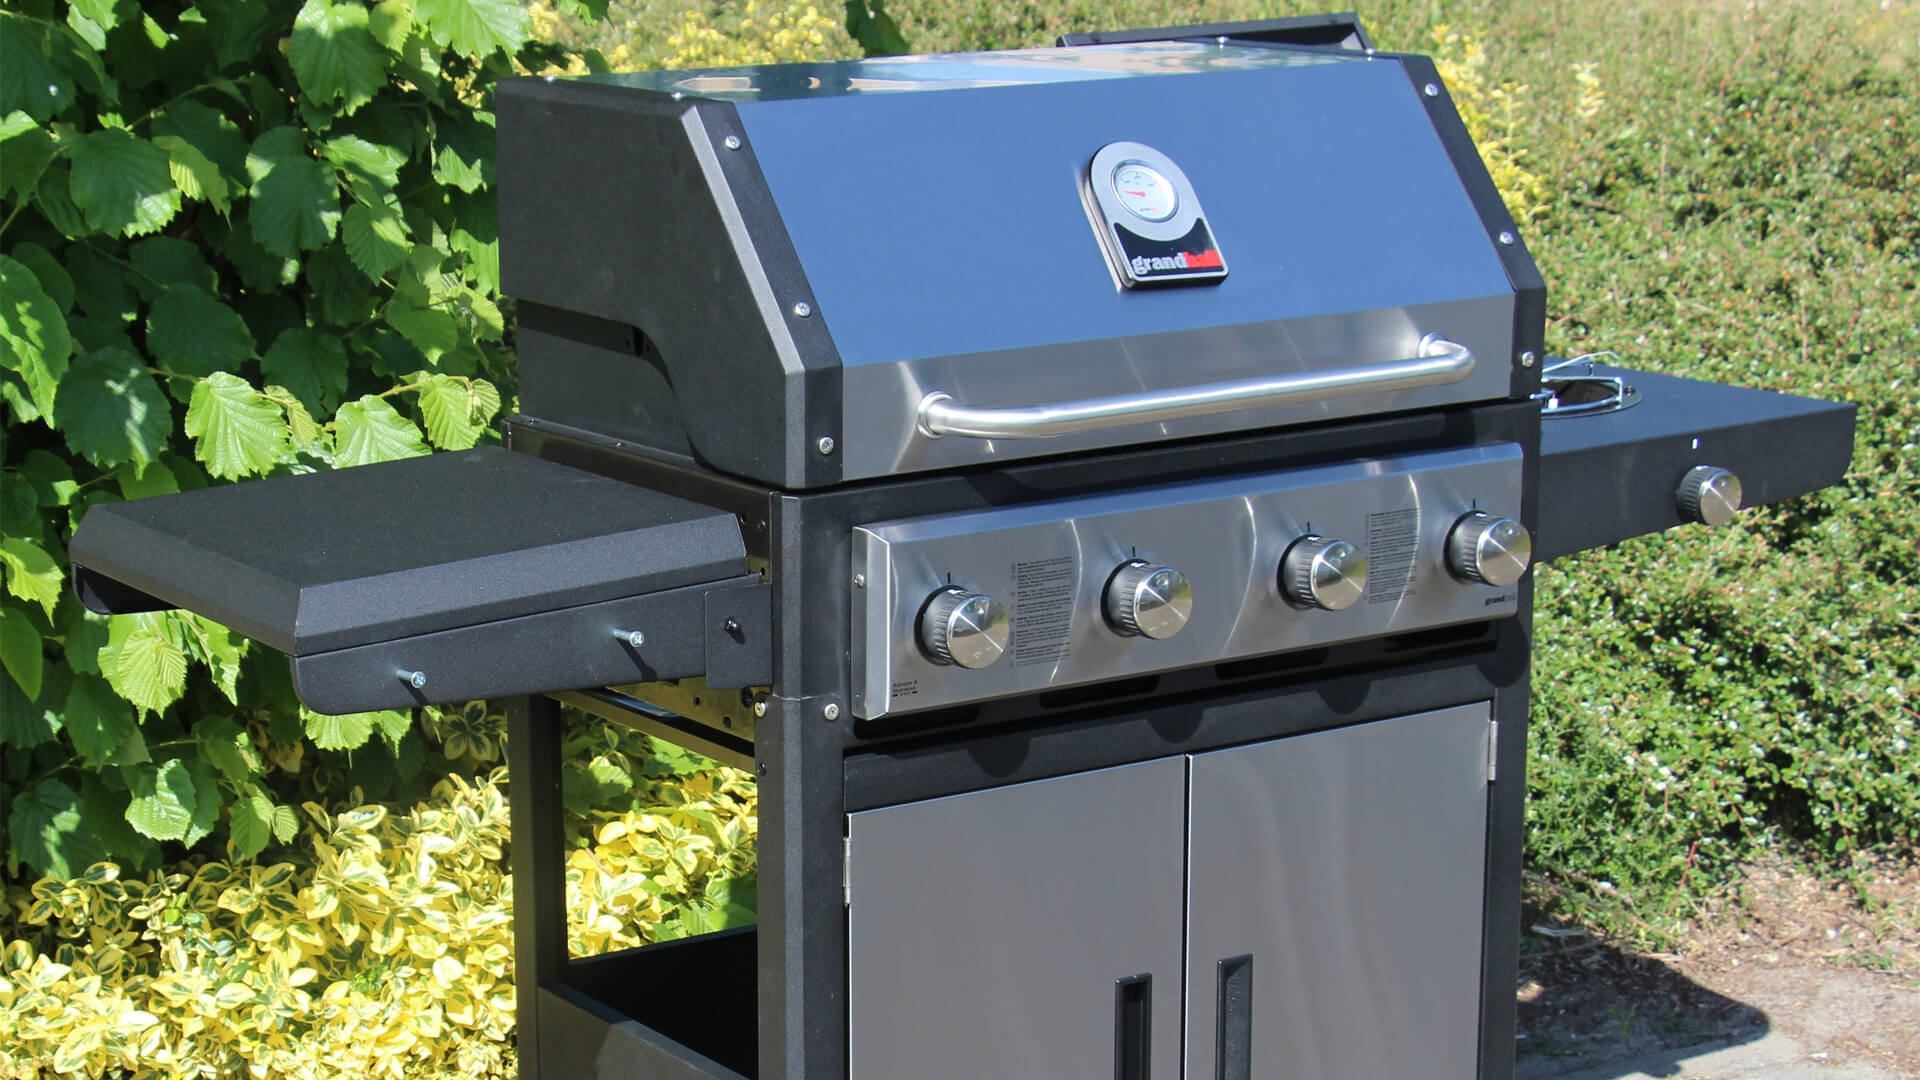 Enders Gasgrill Kansas 4 Sik Profi Turbo : Outdoor küche kansas pro sik profi turbo amazon outdoor kuche